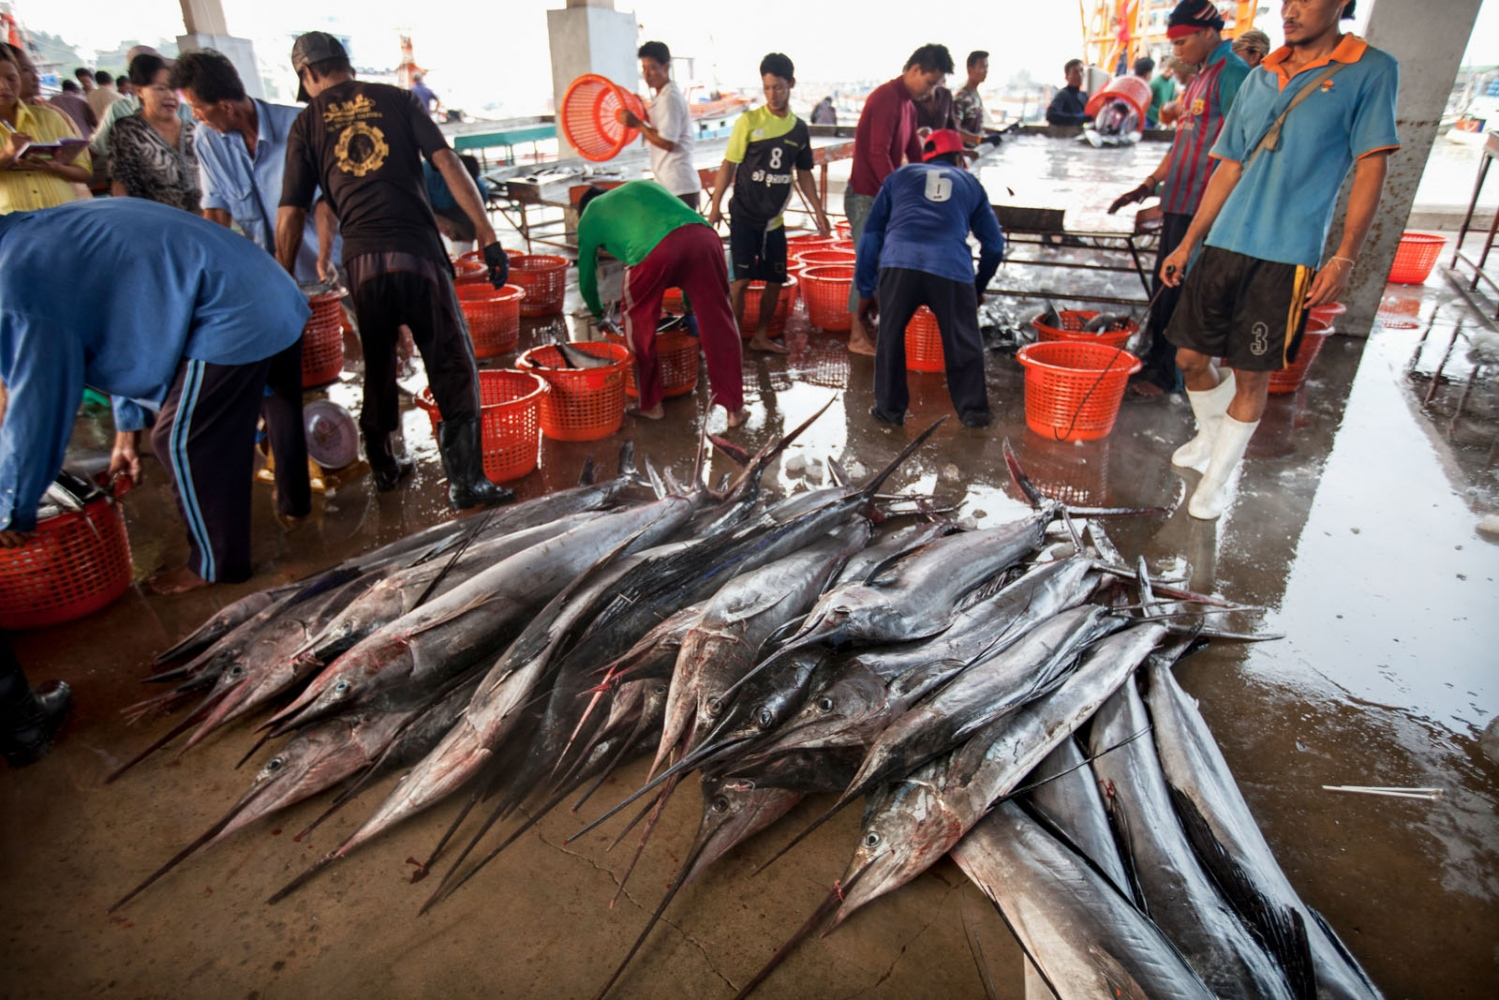 A skool of large sail fish caught by a Thai trawler are unloaded and sold at Phuket's main port. Phuket, Thailand